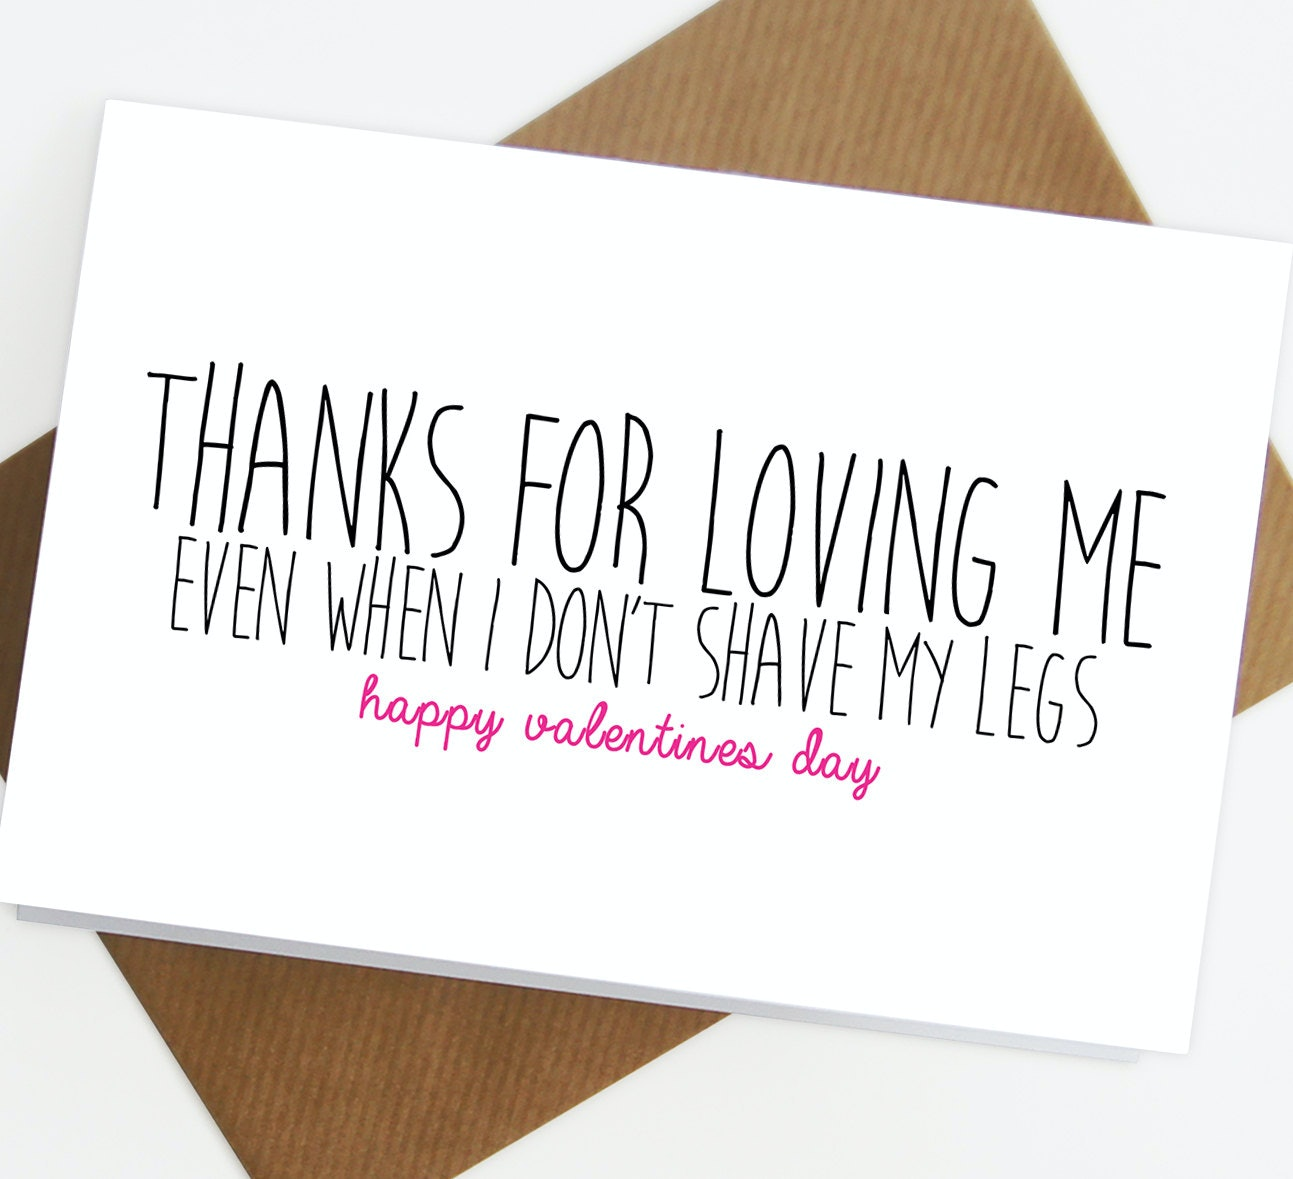 13 Feminist Valentines Day Cards To Send Your Friends That Are – Valentines Day Cards for Men